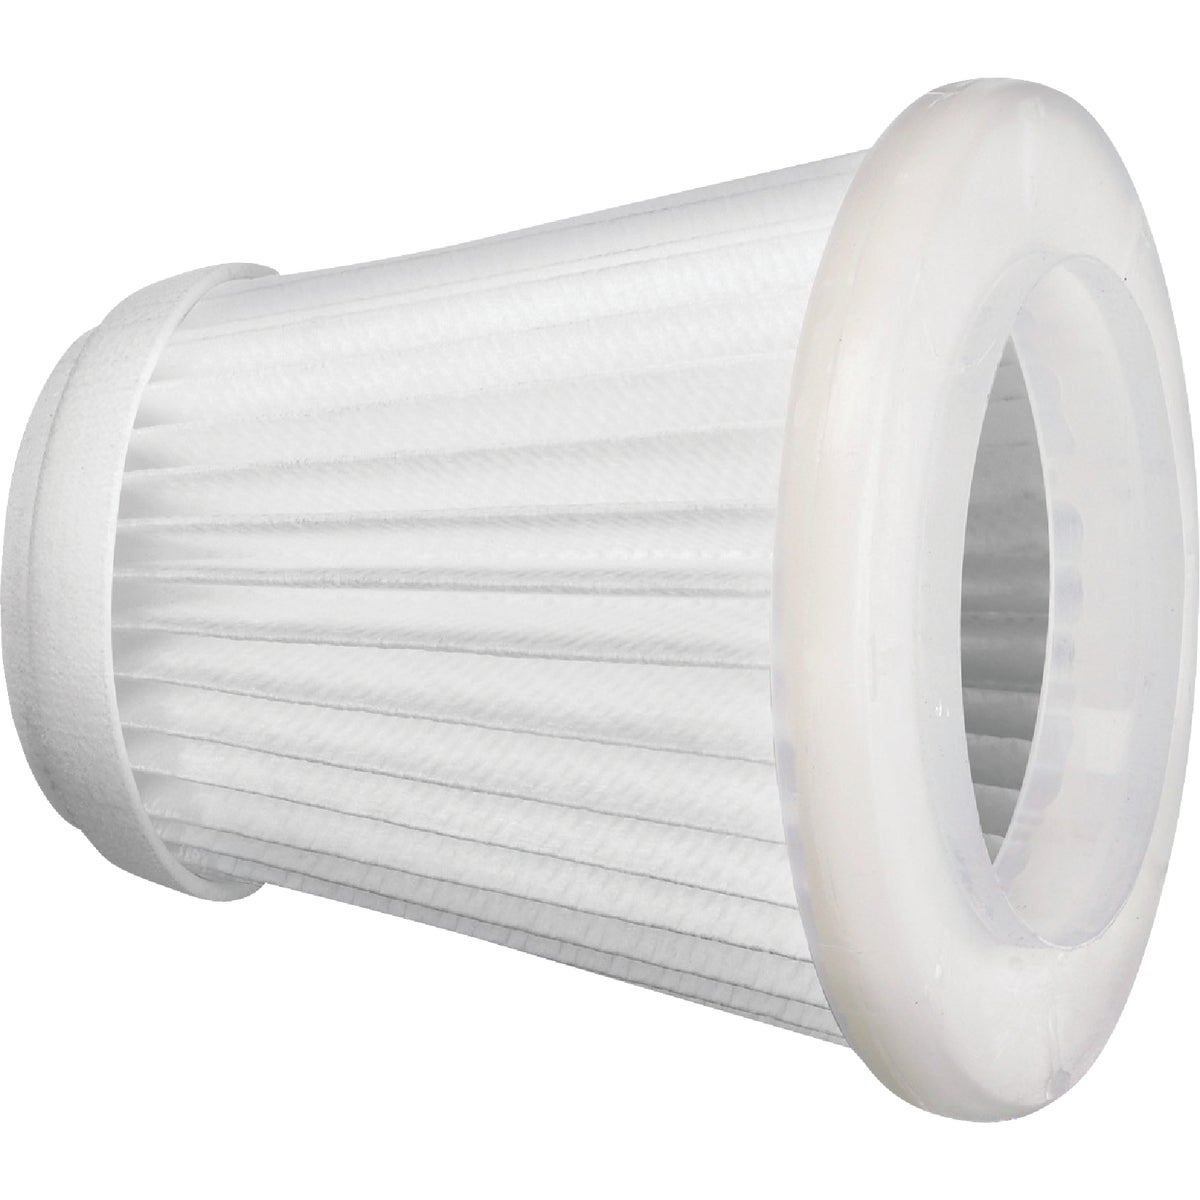 REPLACEMENT FILTER - PVF100 by Black & Decker